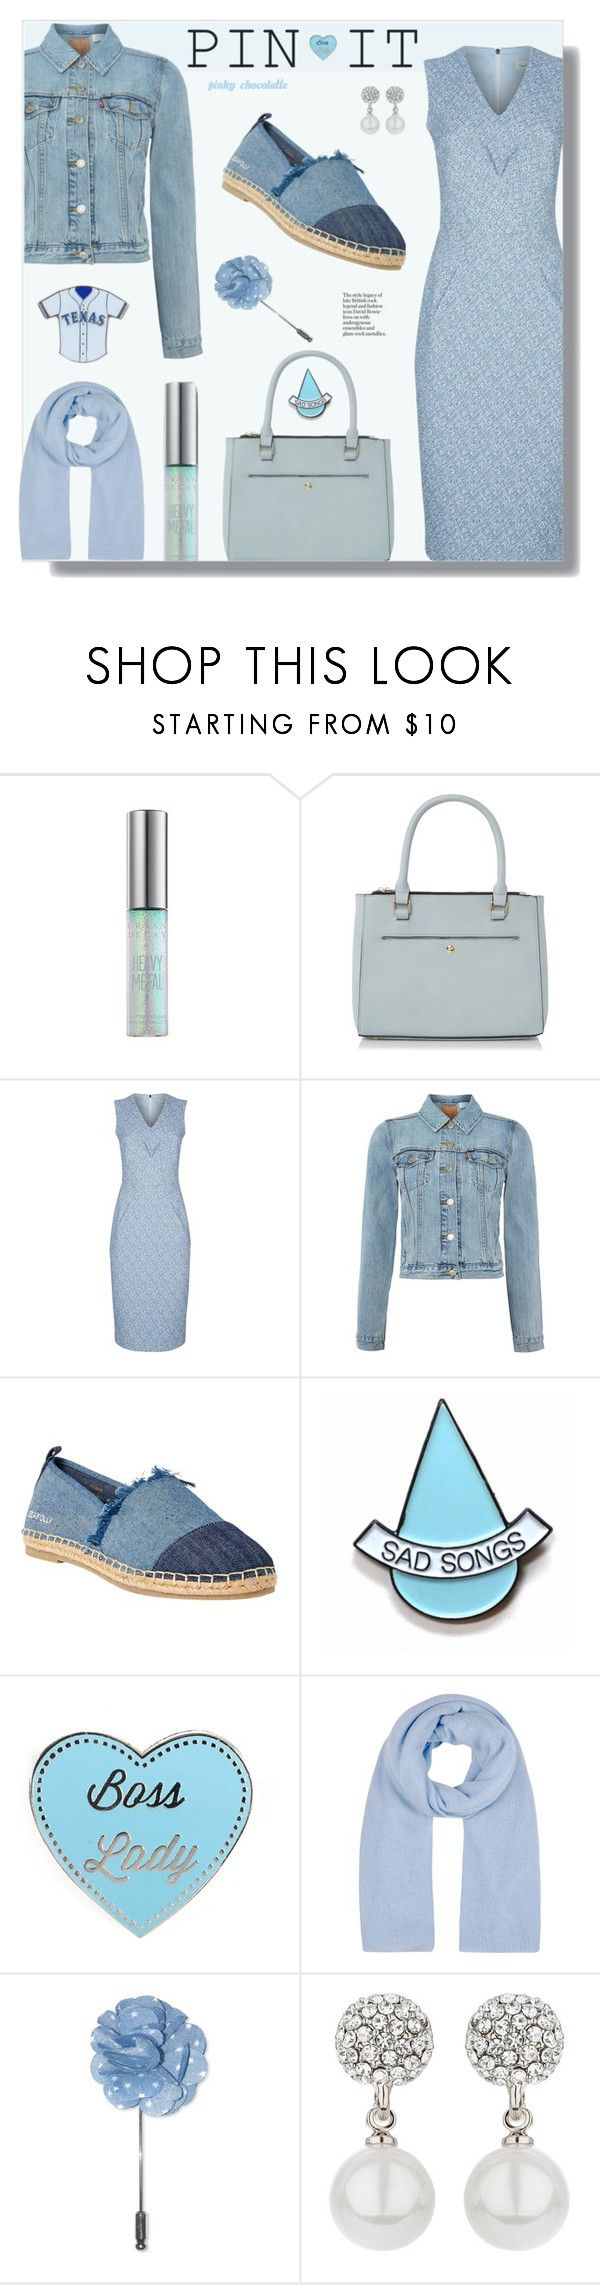 """""""Pastel Pin: 29/12/16"""" by pinky-chocolatte ❤ liked on Polyvore featuring Damsel in a Dress, Levi's, Seafolly, Stay Home Club, Winser London, Penguin, Mikey and aminco"""